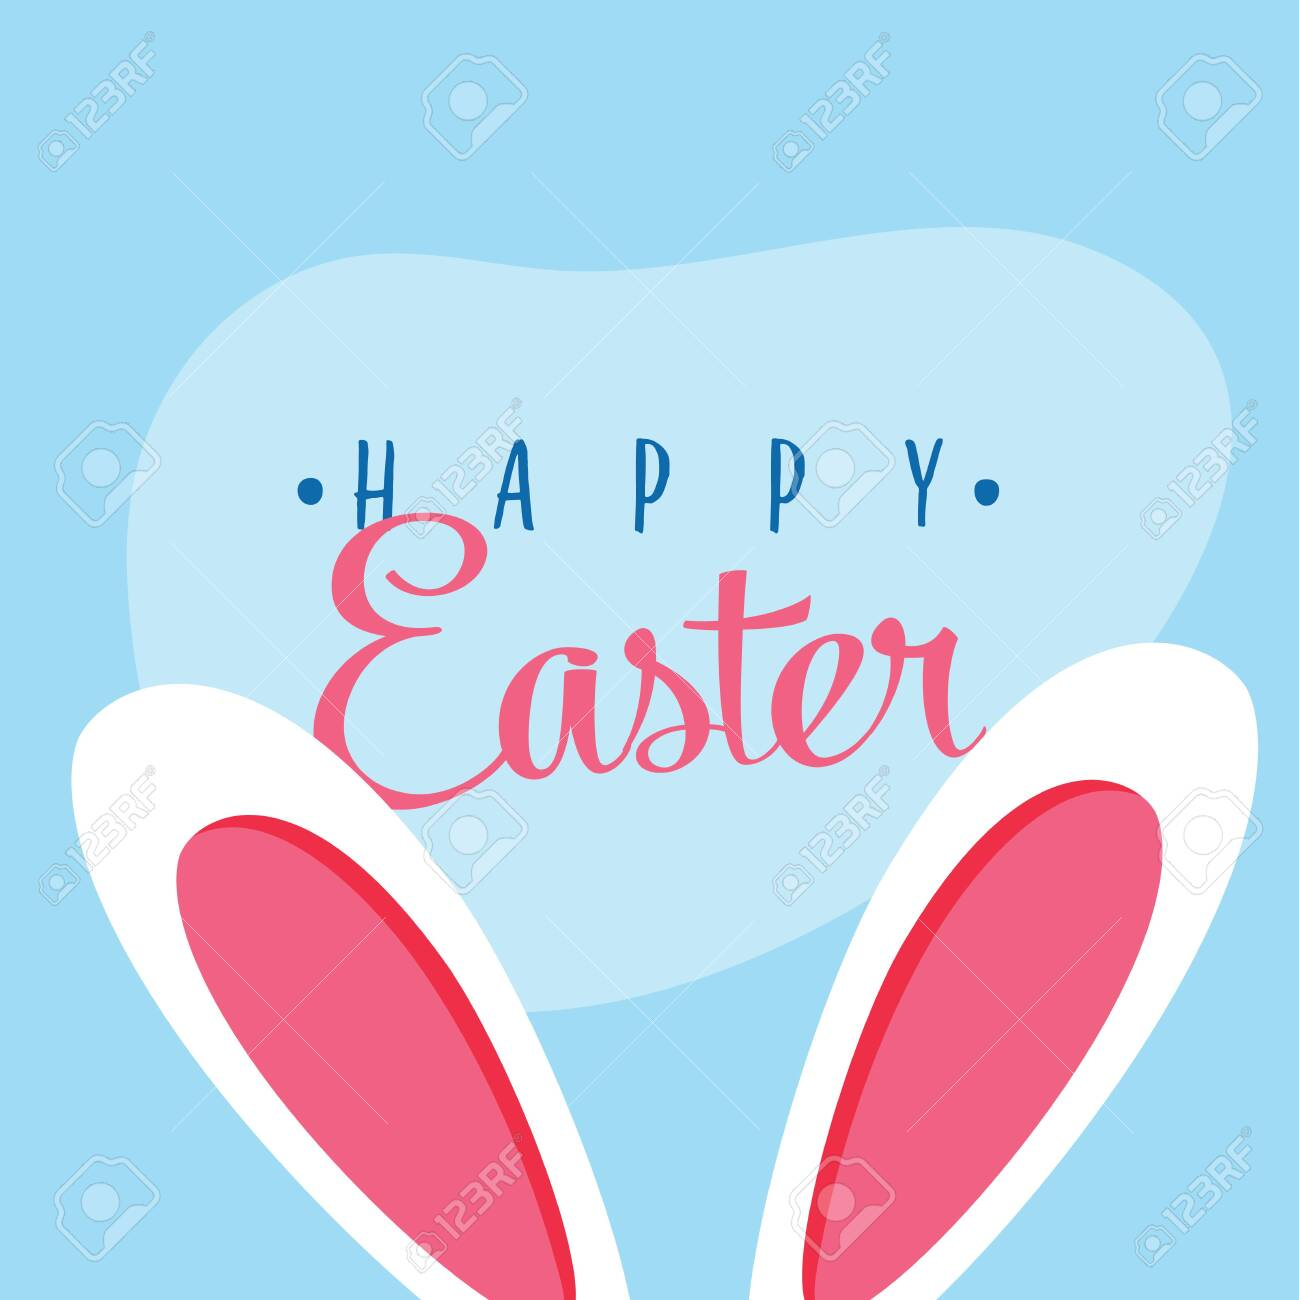 Cute easter bunny vector illustration, bunny ears. Greeting card with Happy Easter writing. Ears of rabbit Isolated on blue background. Holiday postcard, beautiful, colorful post for social networks - 121663535